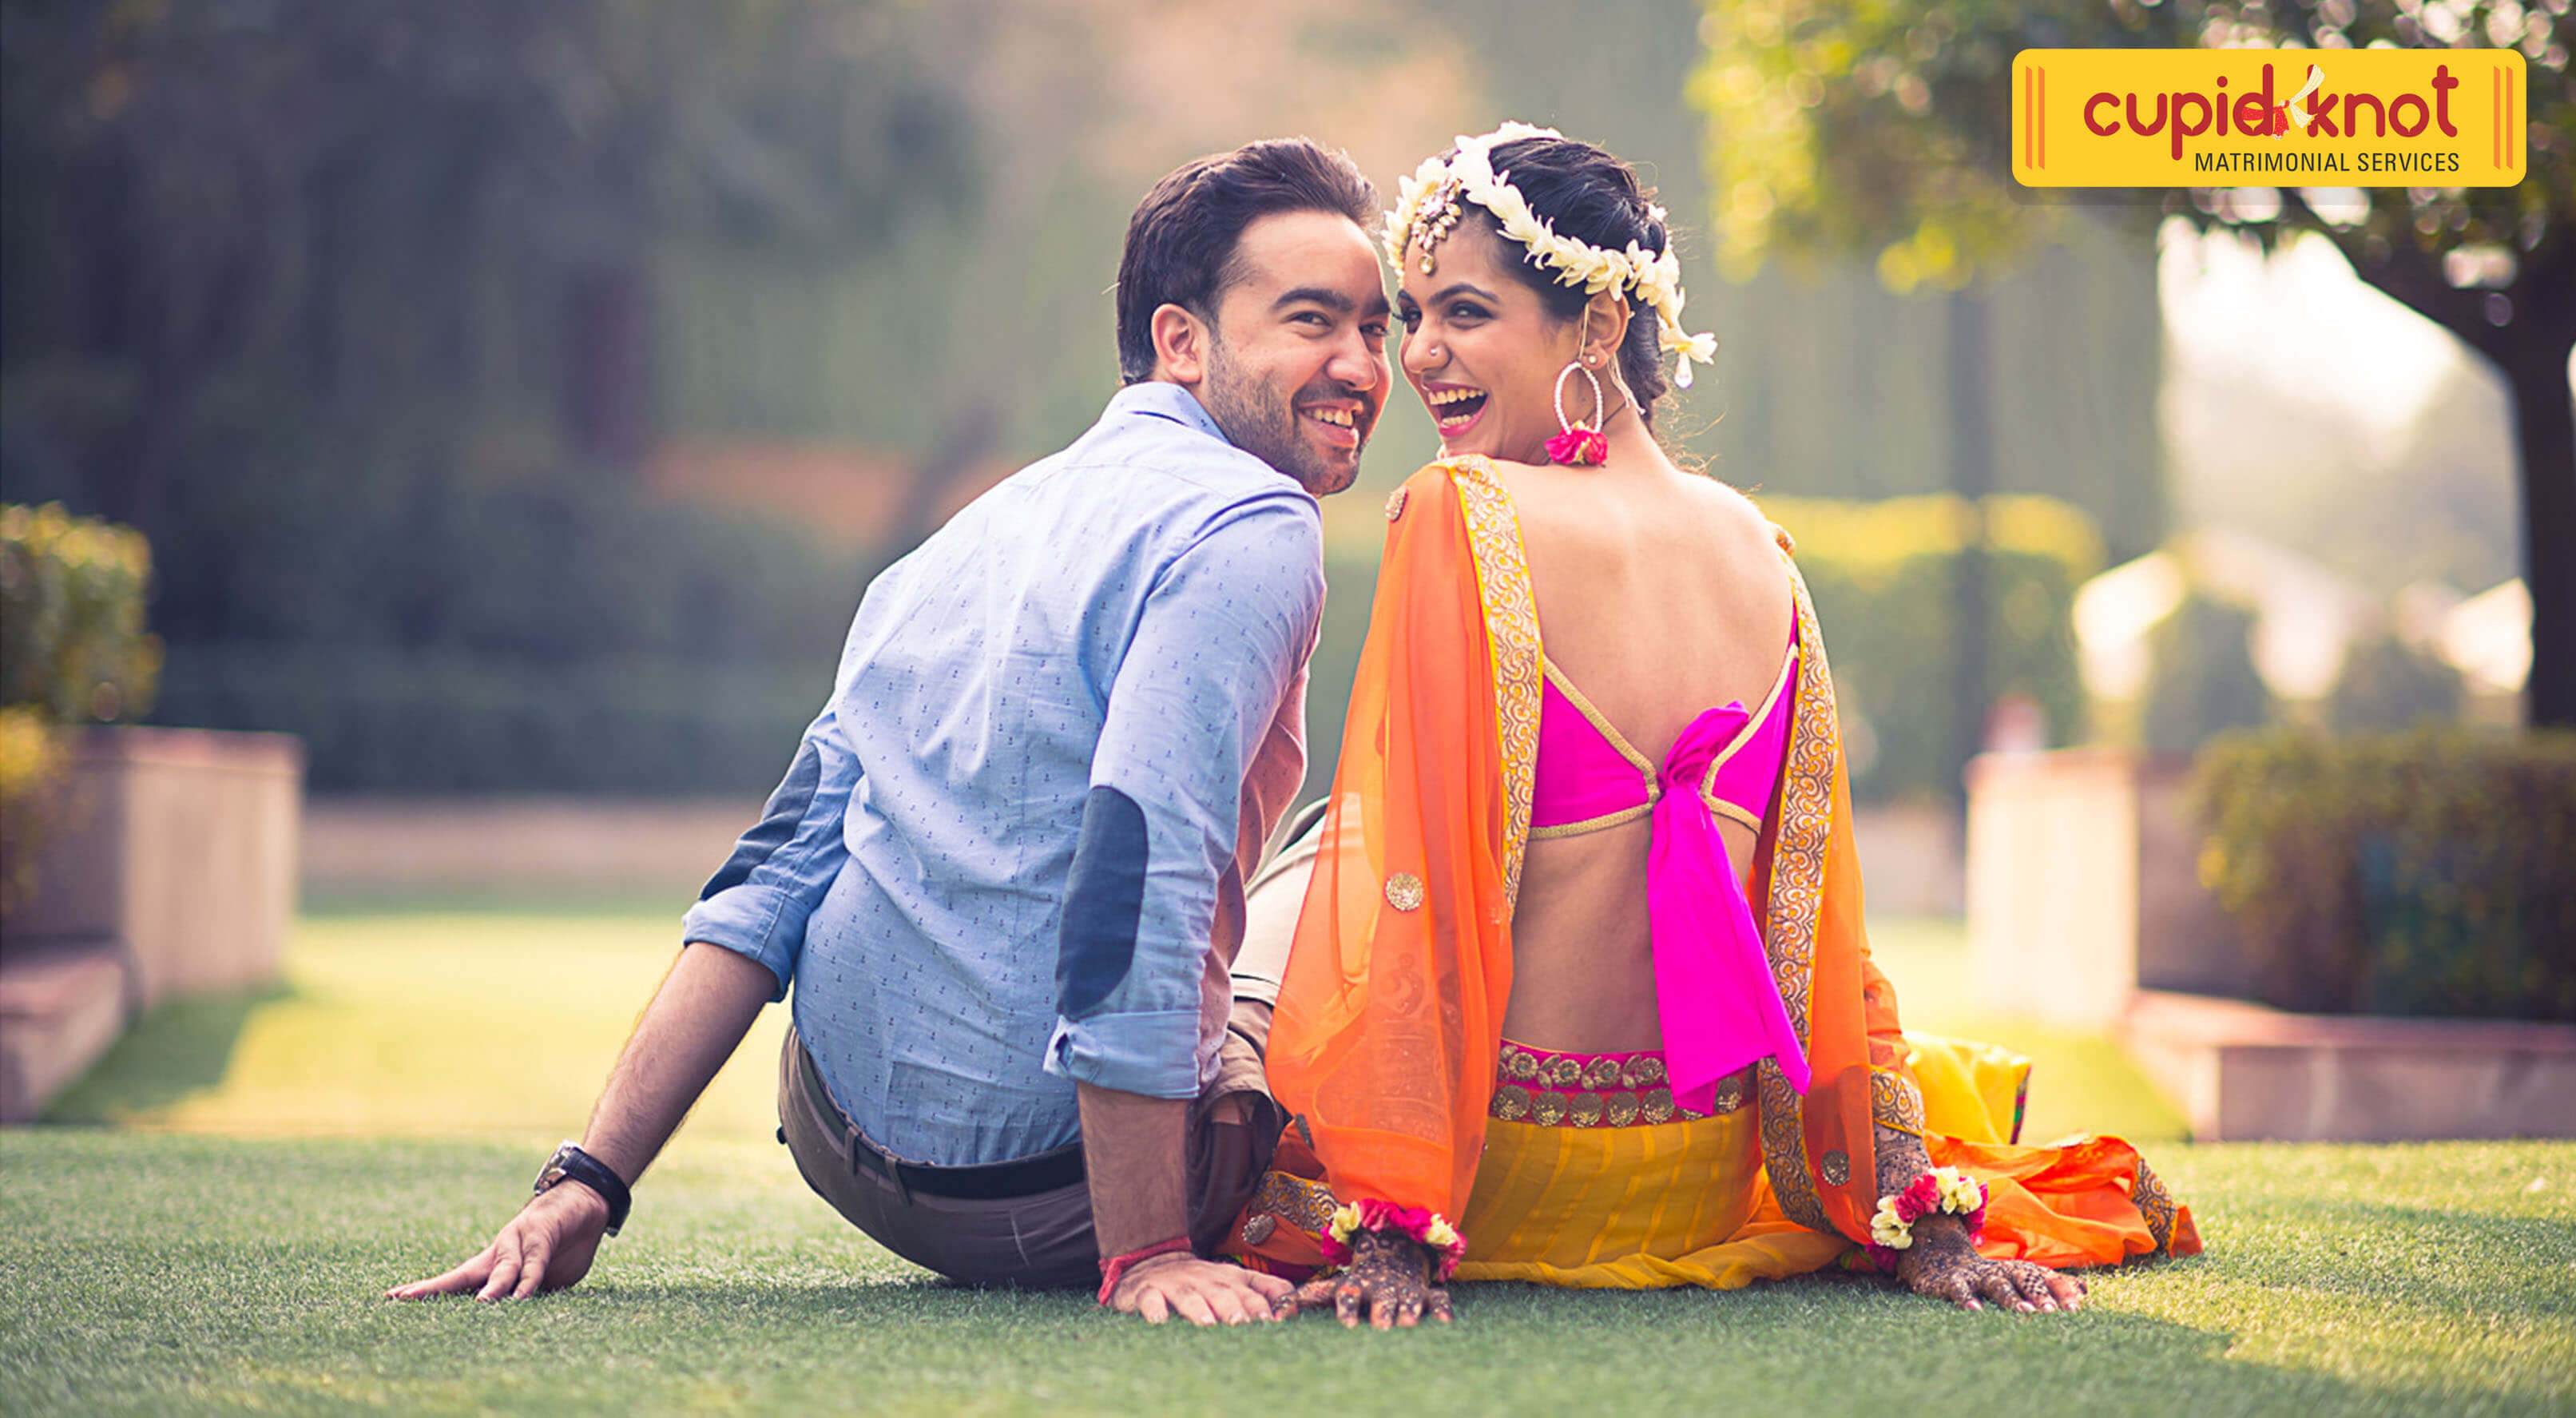 Matrimonial Portal for Mumbai People